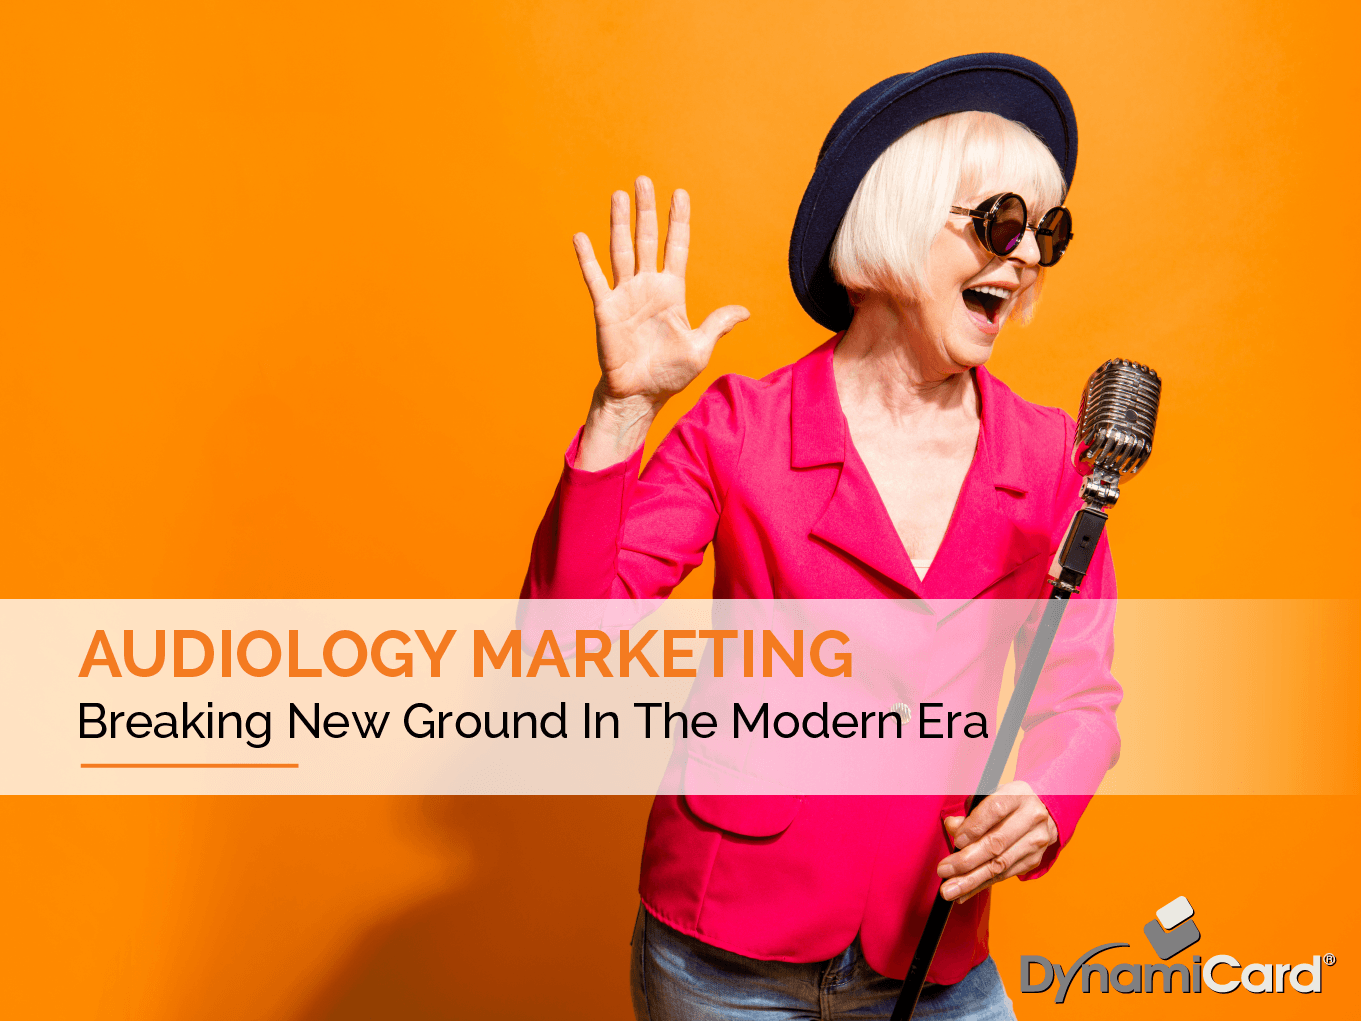 Audiology Marketing